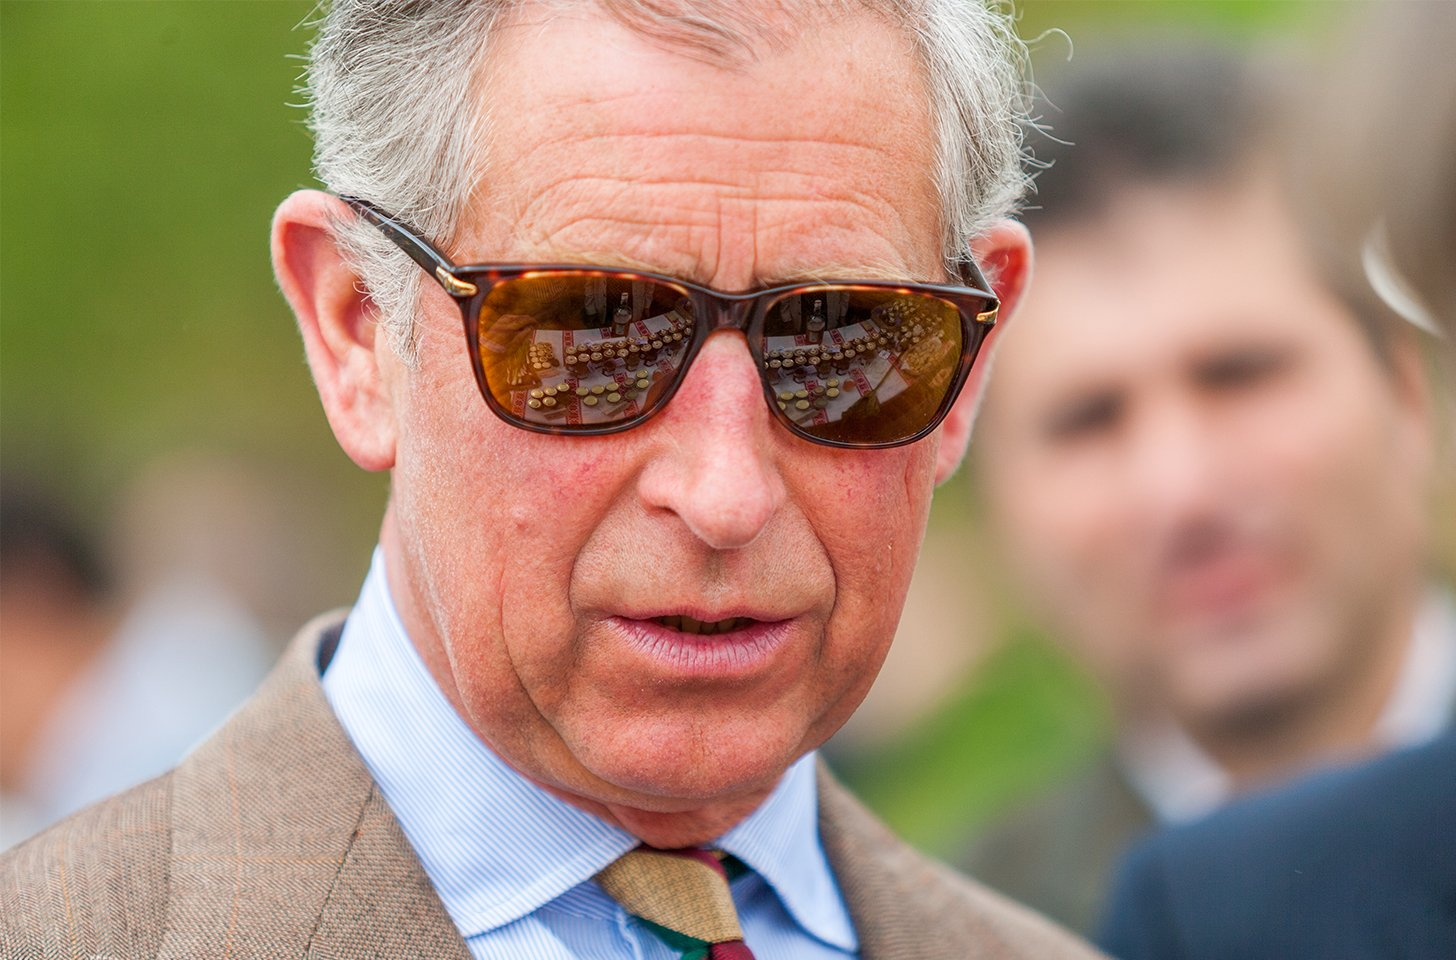 Prince Charles Exacting Revenge On Meghan Markle By Refusing To Give Titles To Her Children